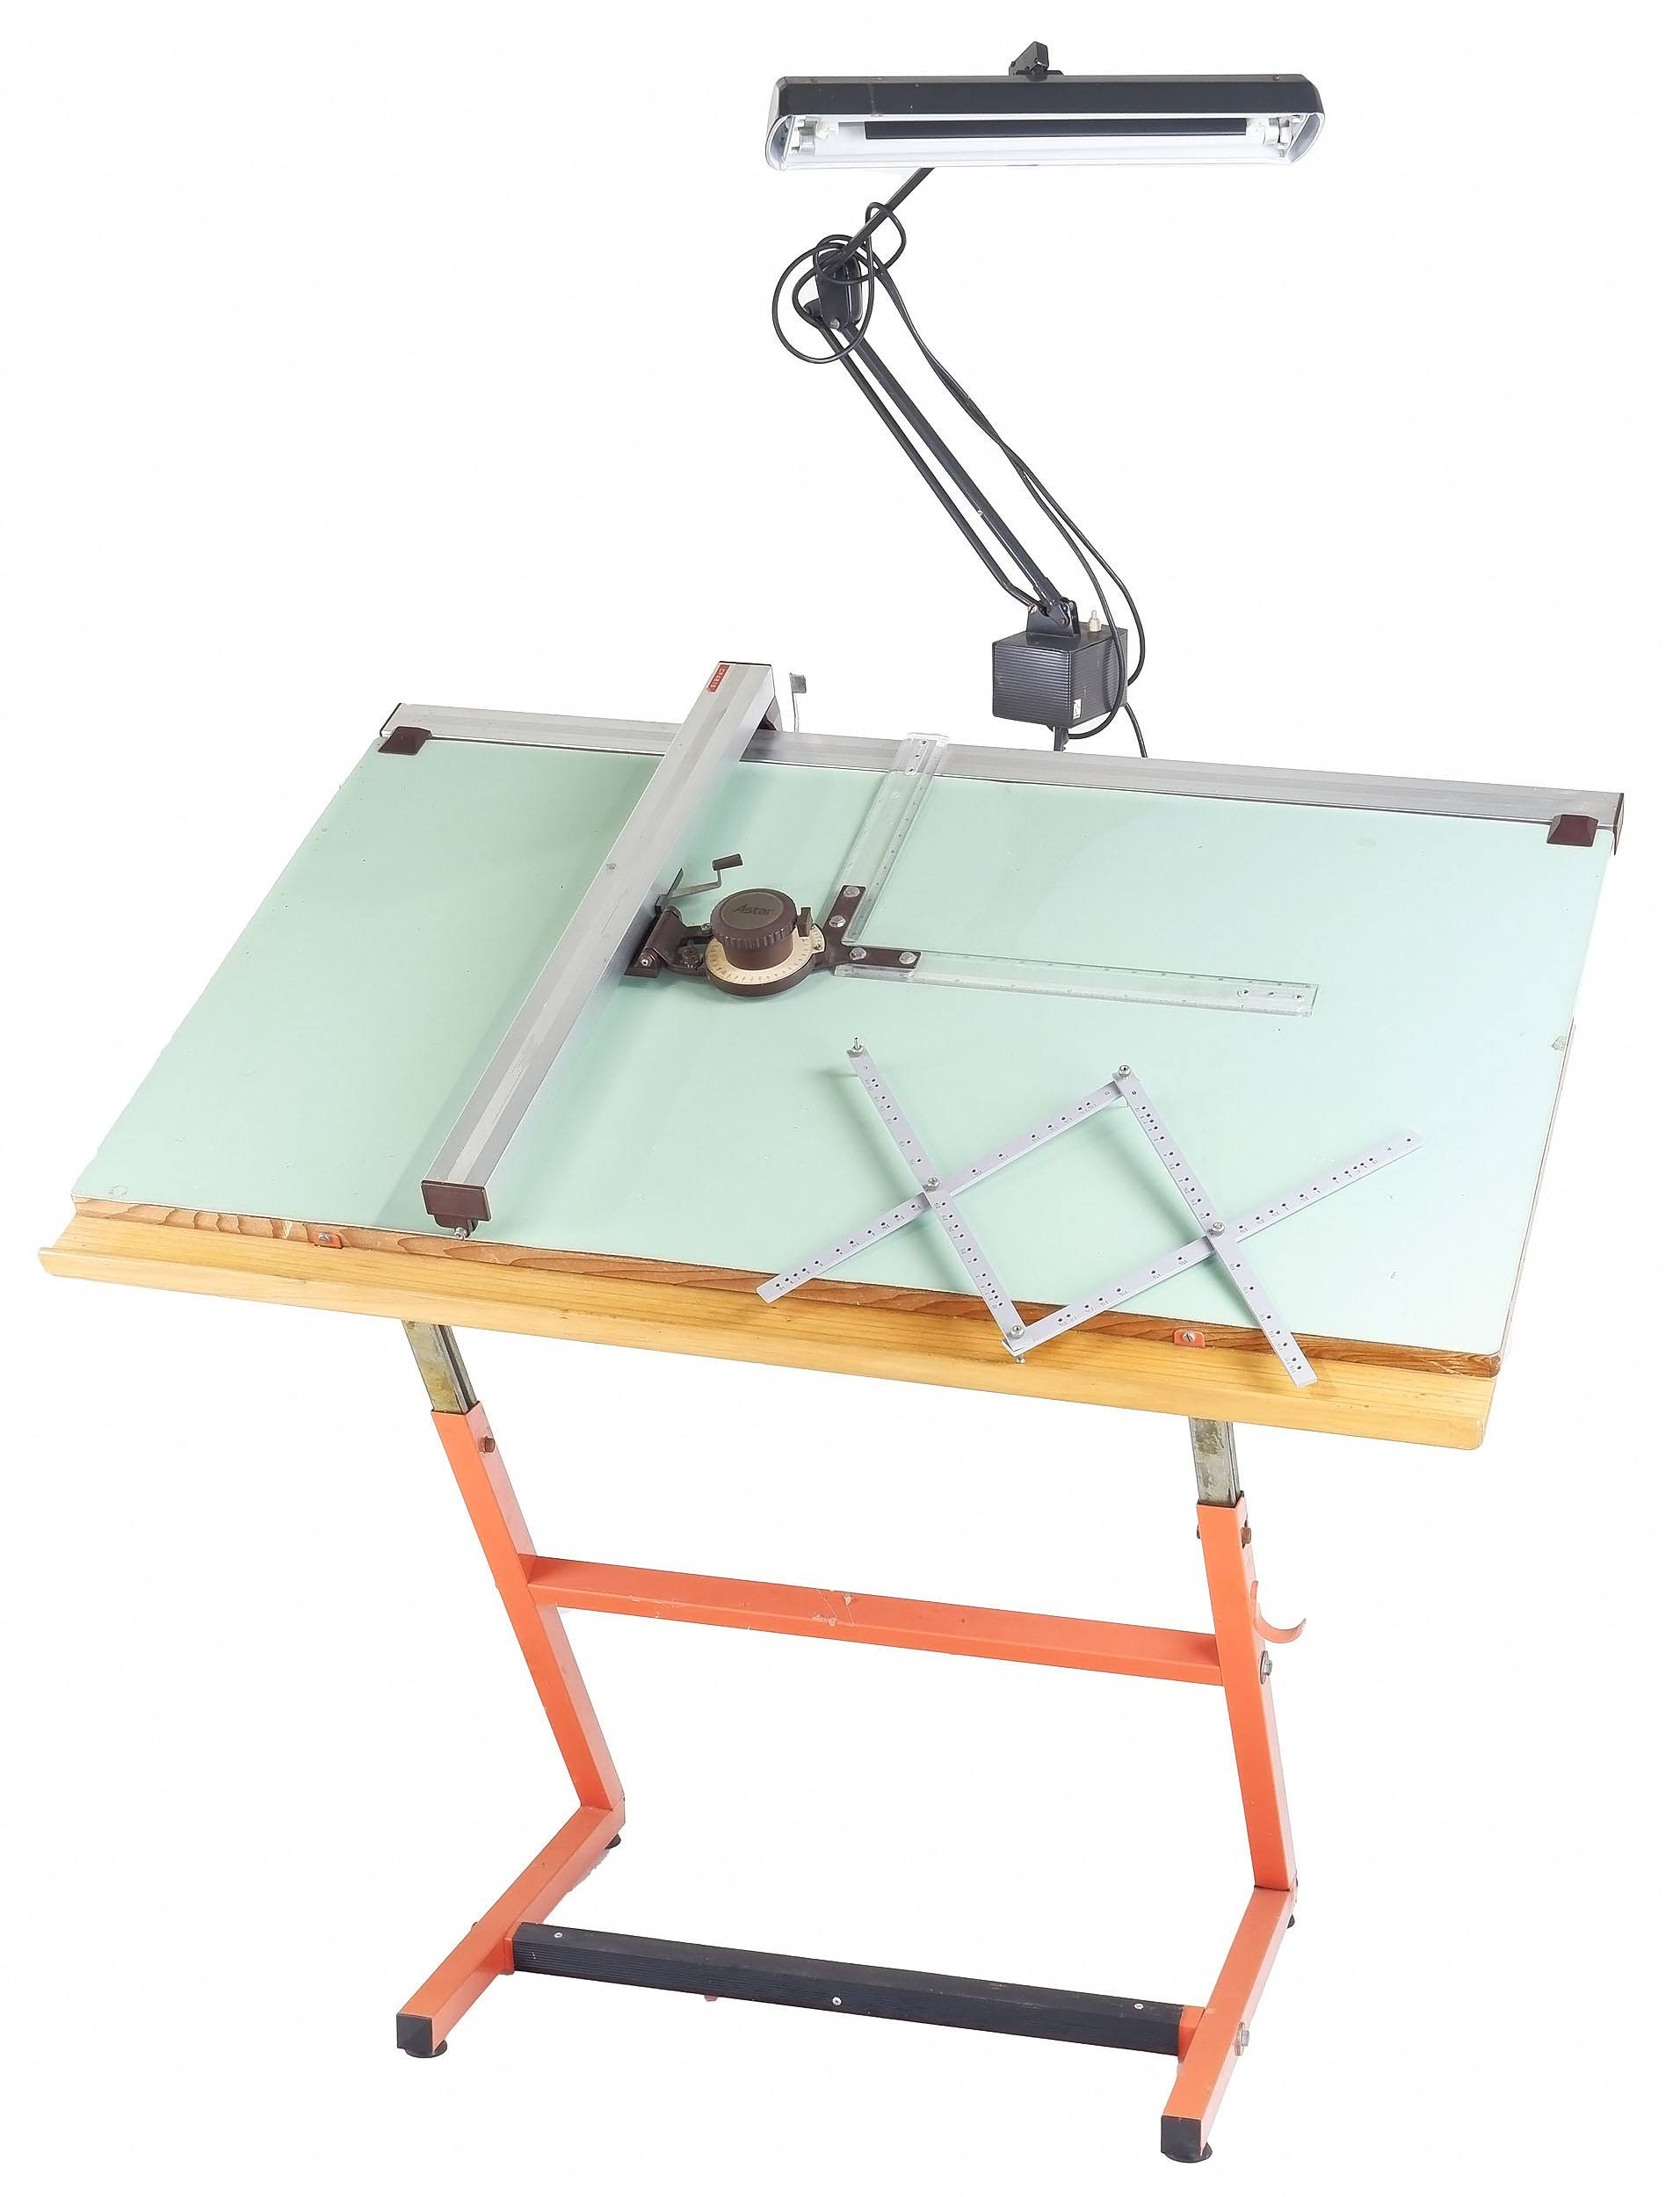 'Modernist Drafting Table with Integral Planet Lamp'